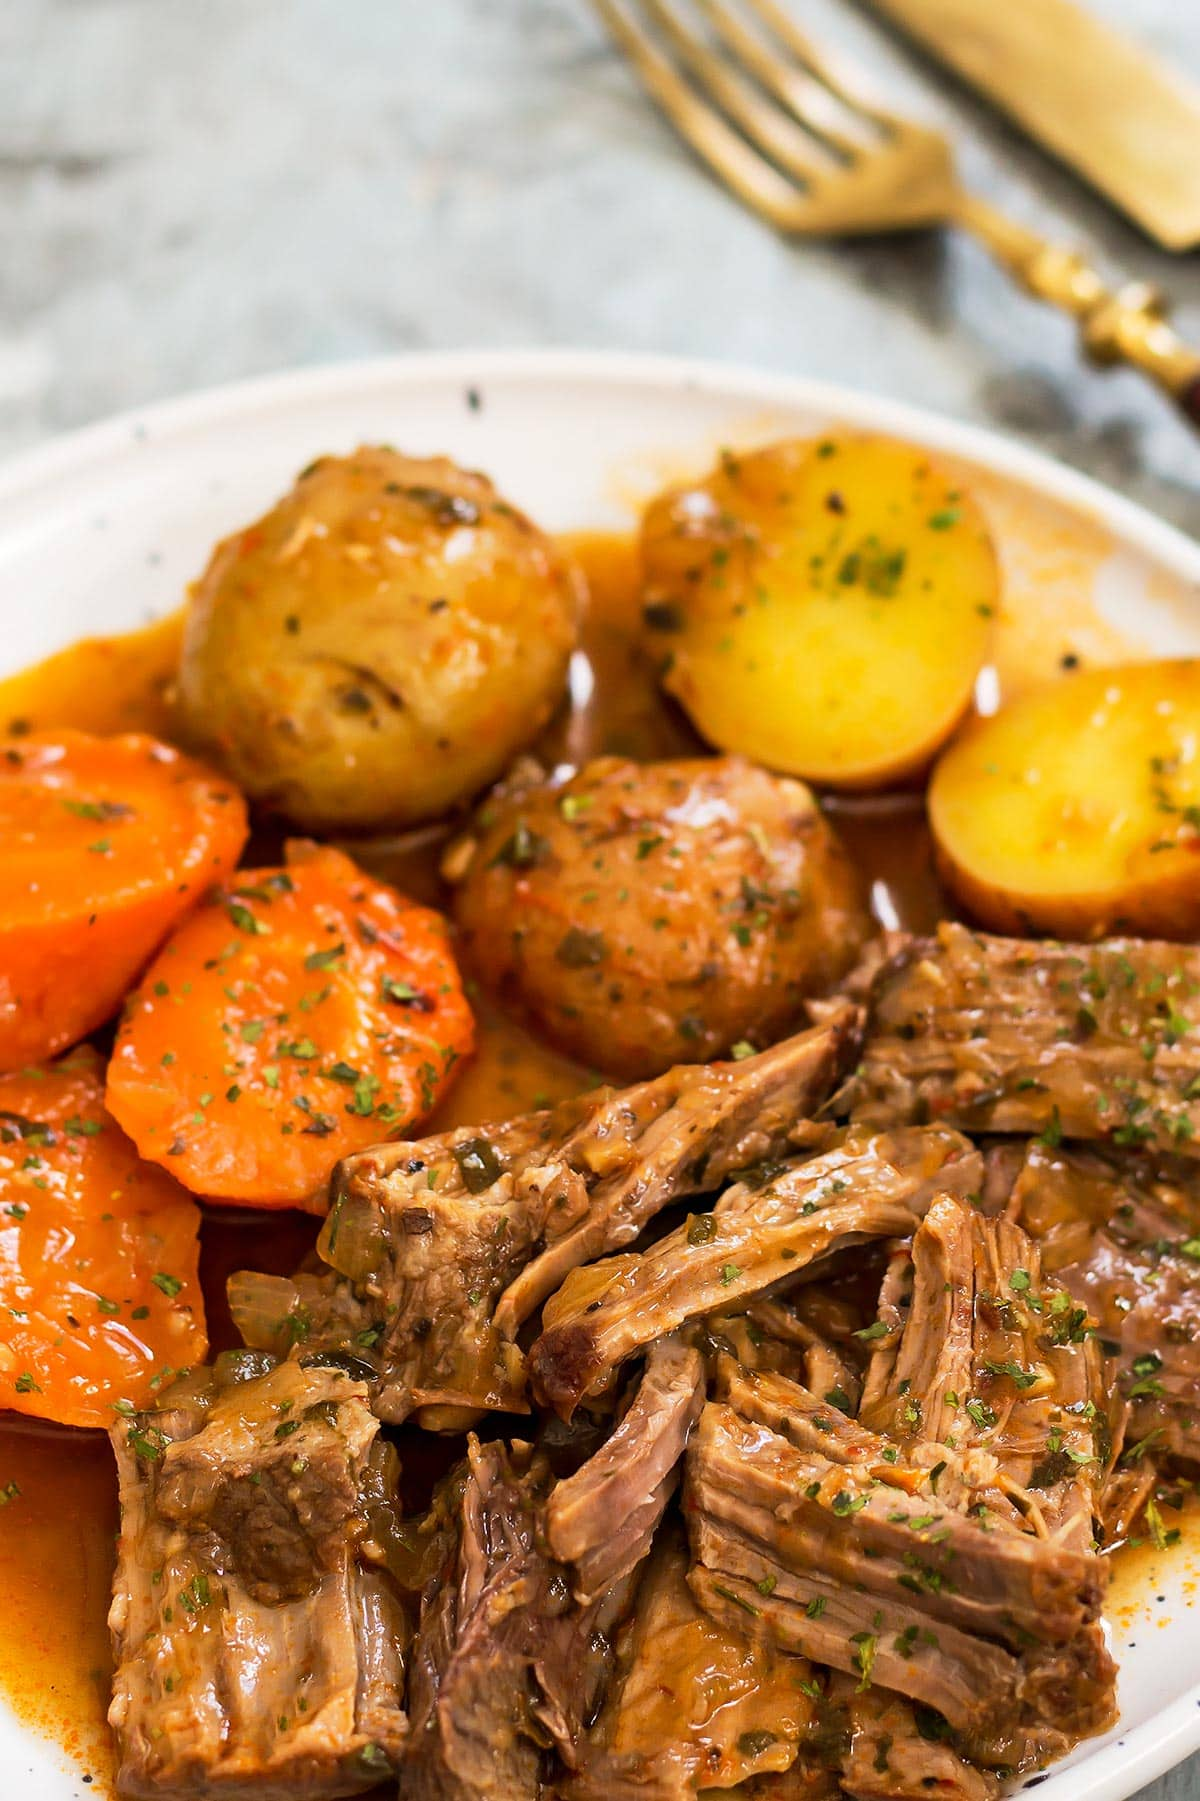 Plate of Crock Pot Roast with potatoes and carrots